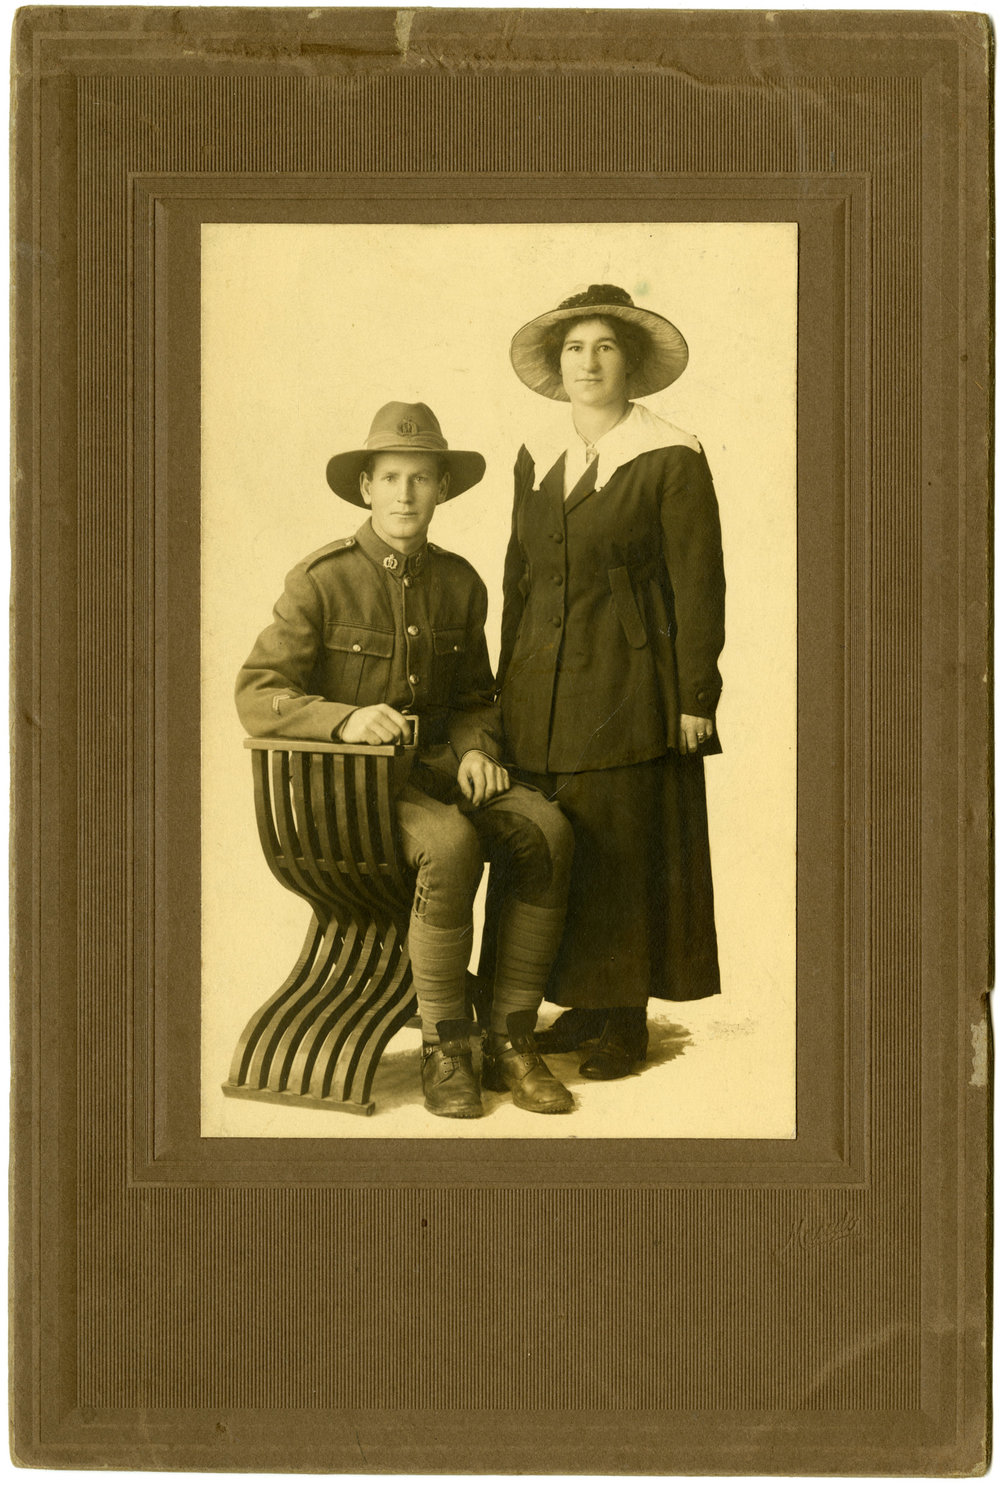 Gilbert Edison Rose with wife Mary Constance Cecile Hinkley. They married in 1916.